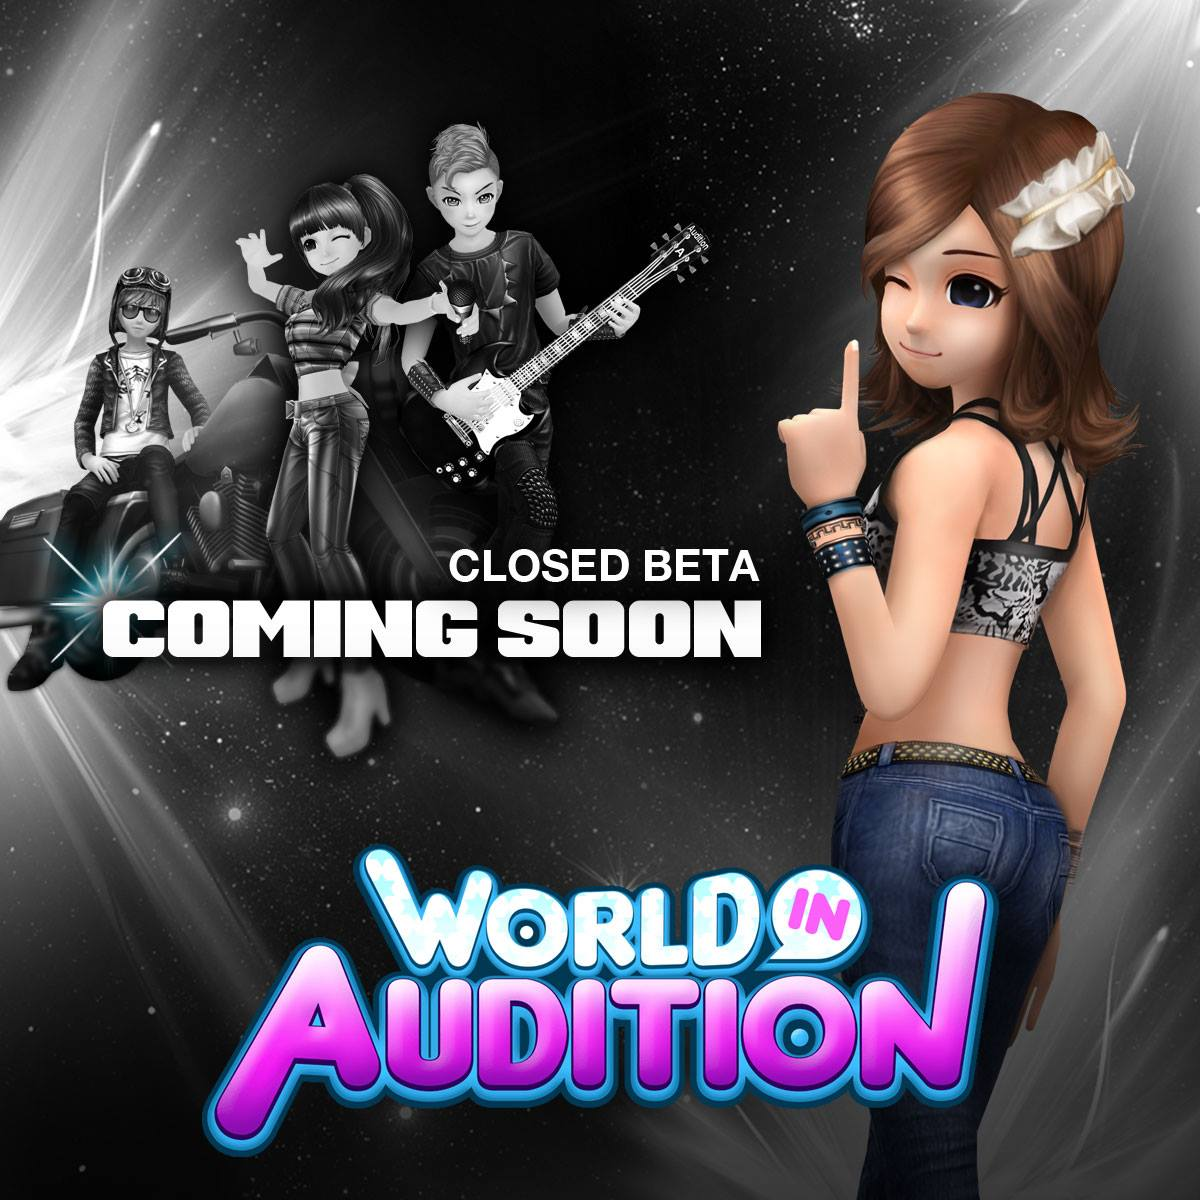 World in Audition teaser